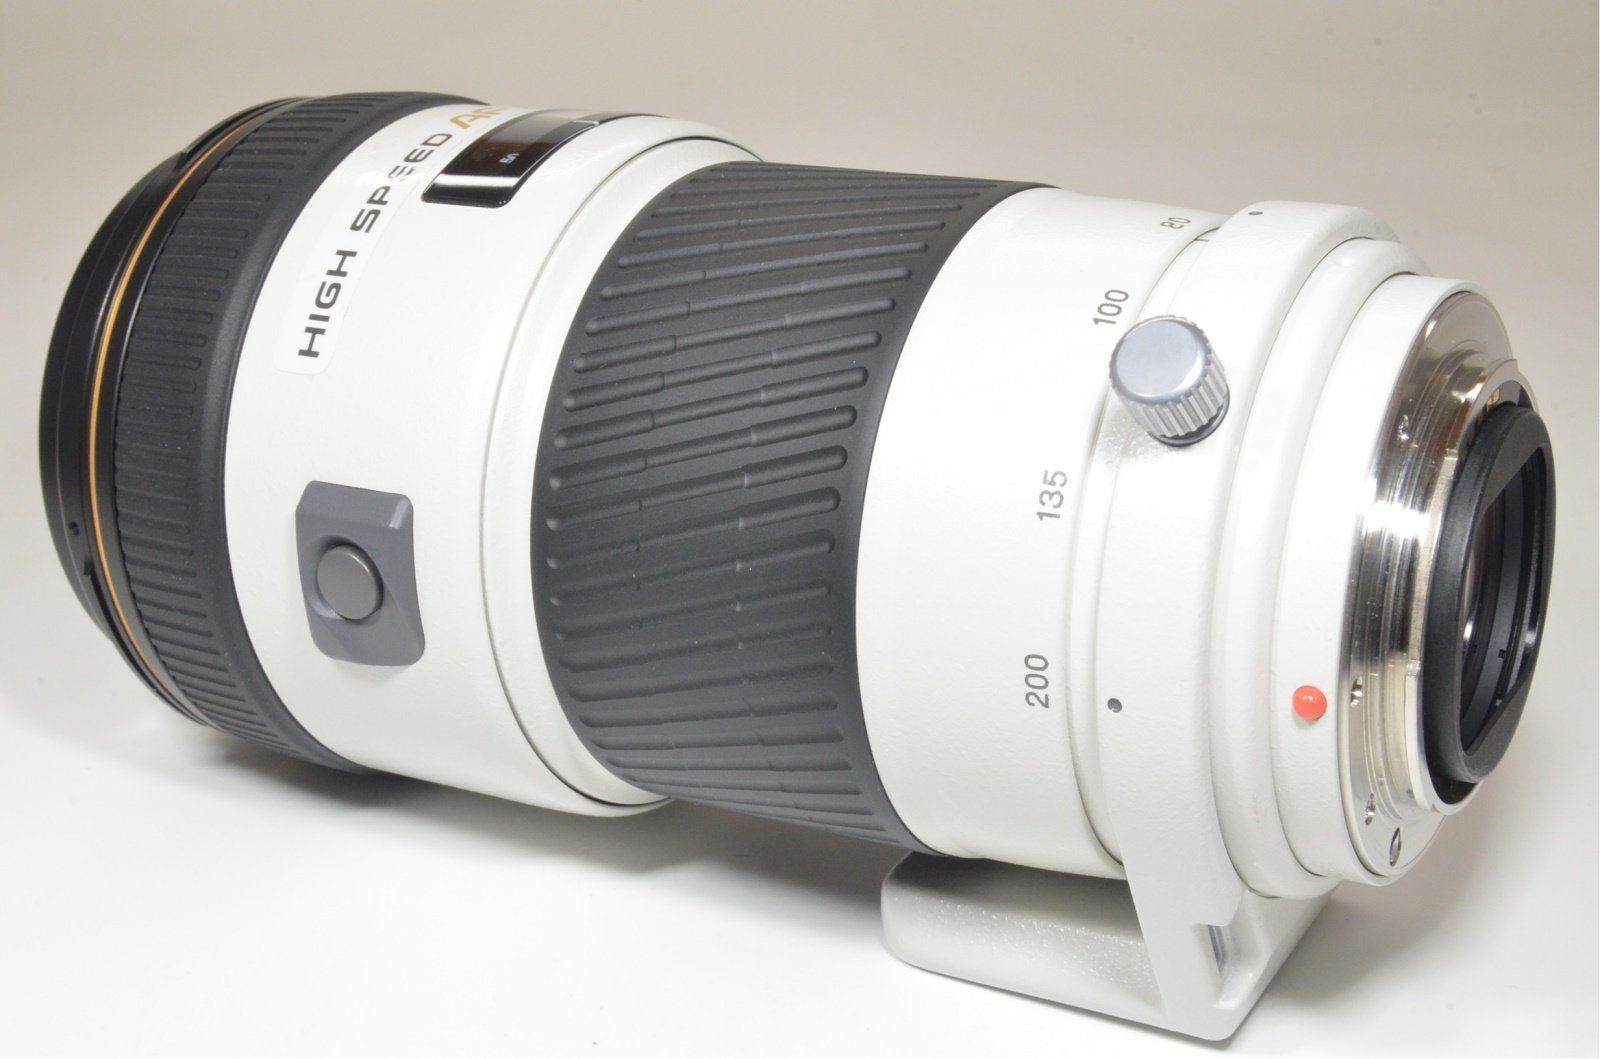 minolta high speed af apo 80-200mm f2.8 g lens sony with case and box